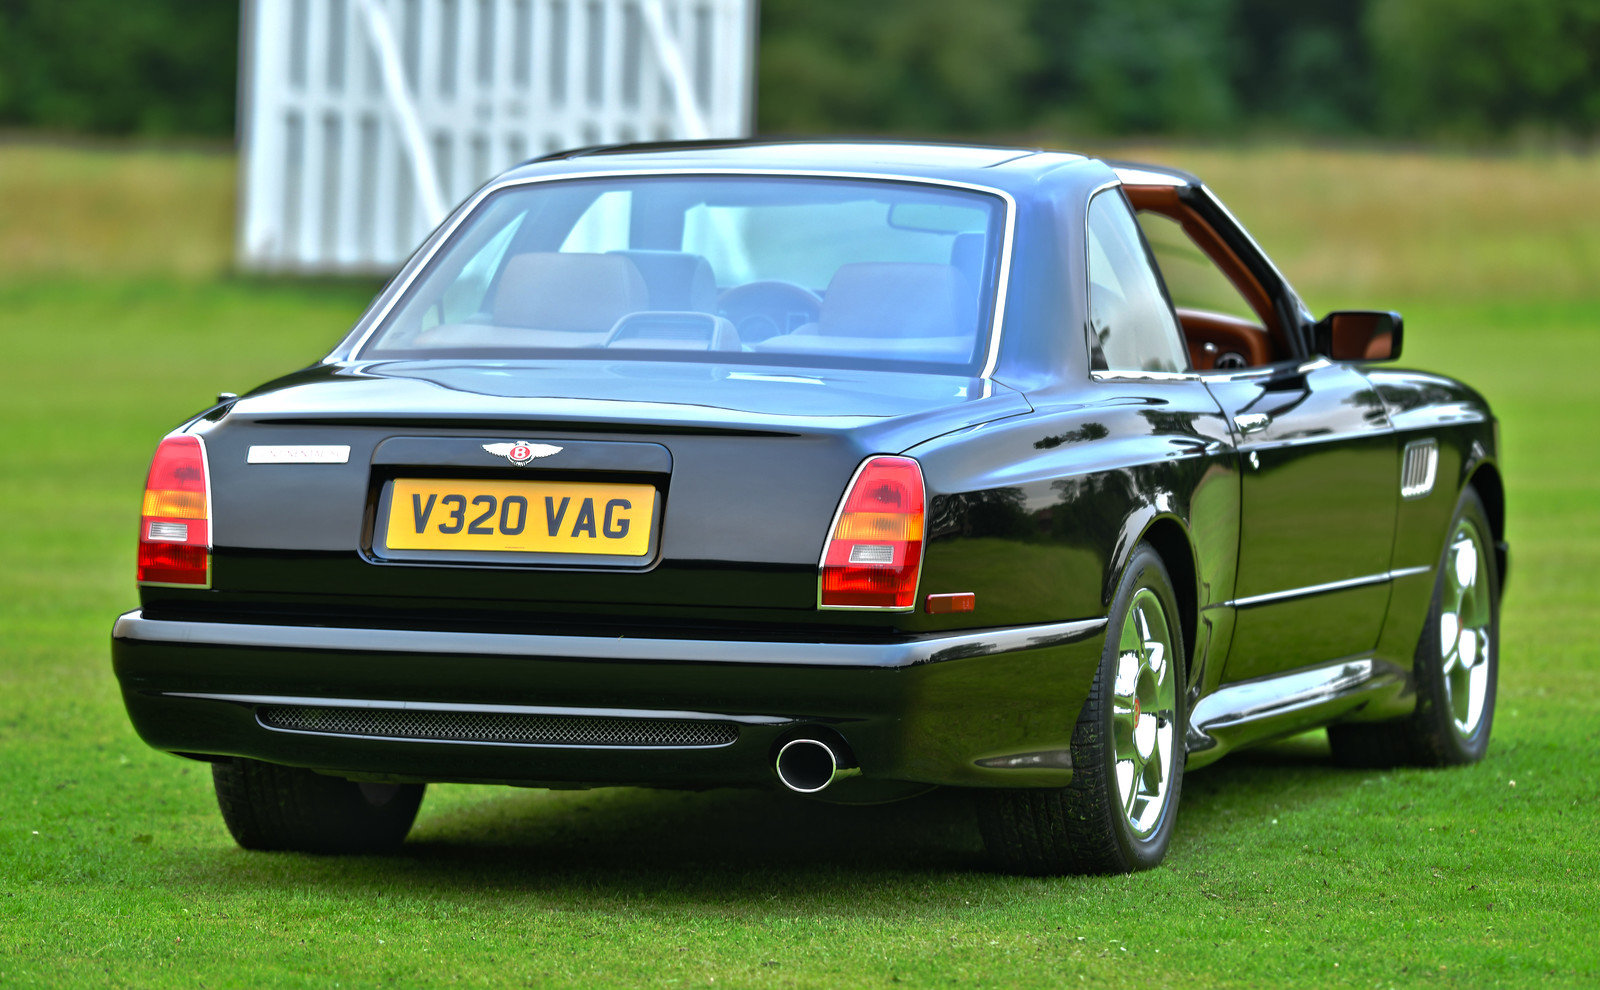 1999 Bentley Continental Sedanca Coupe SC LHD For Sale (picture 3 of 6)